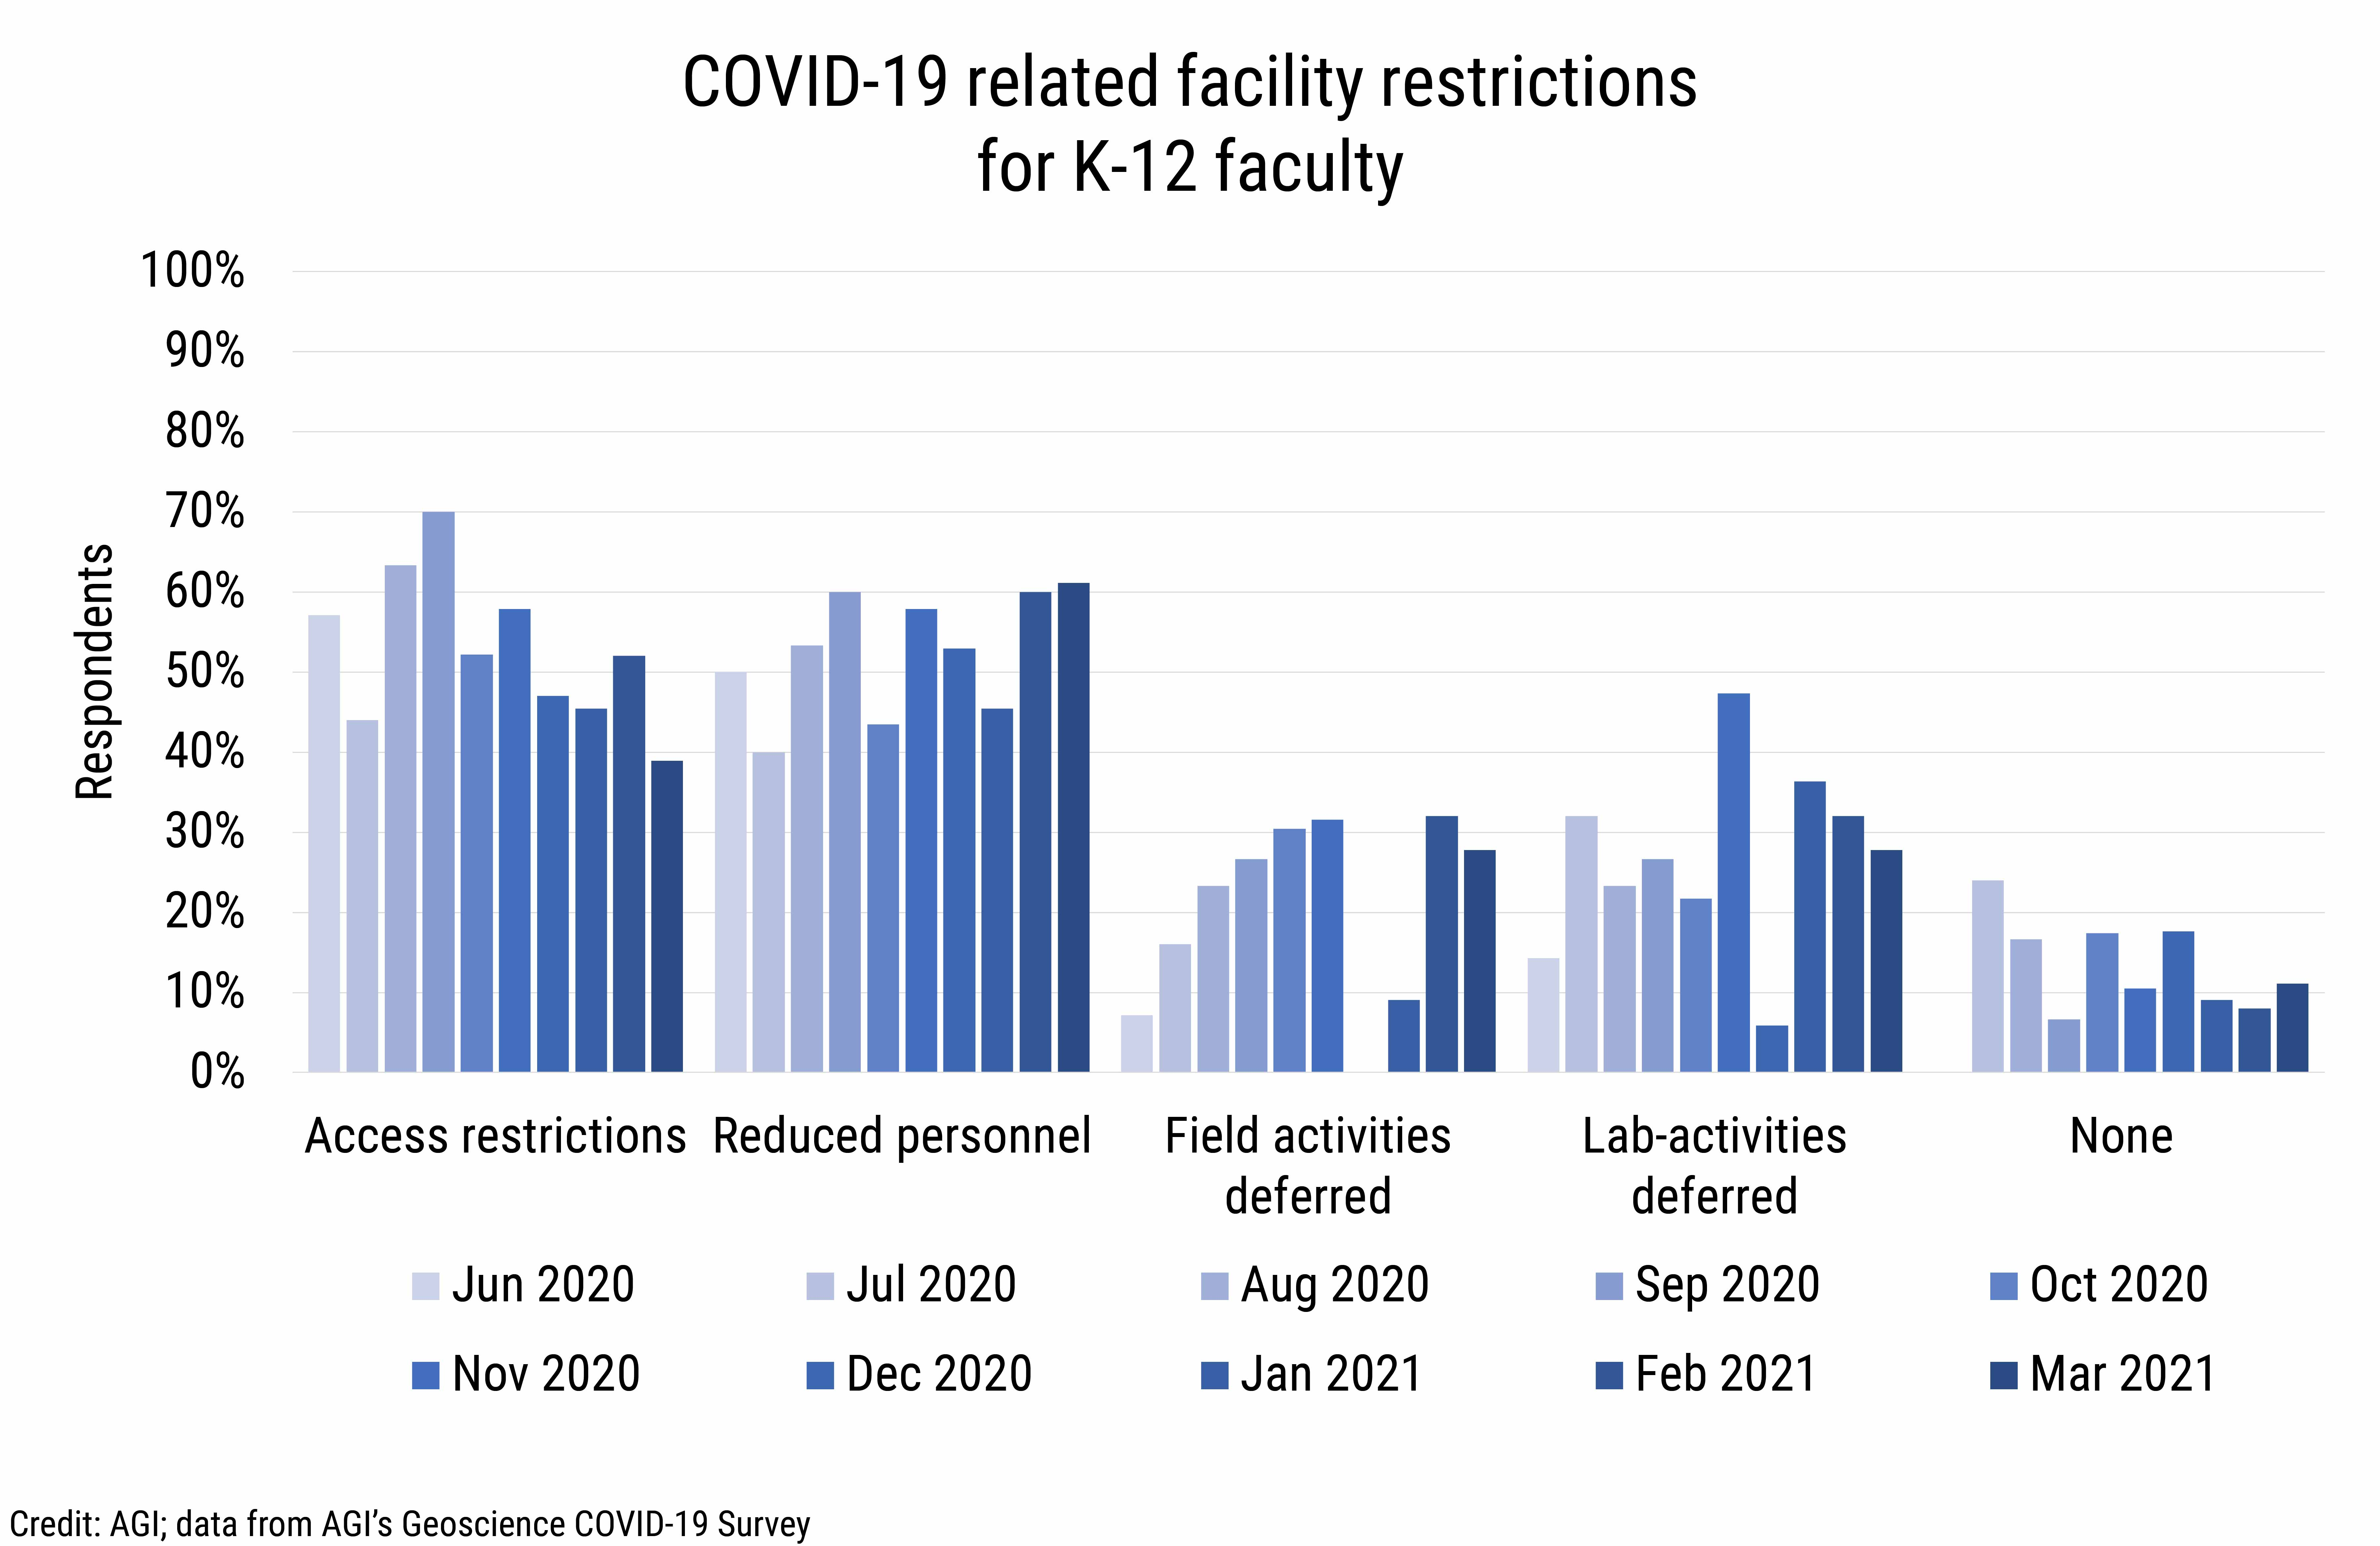 DB_2021-013 chart 04: COVID-19 related facility restrictions for K-12 faculty (Credit: AGI; data from AGI's Geoscience COVID-19 Survey)